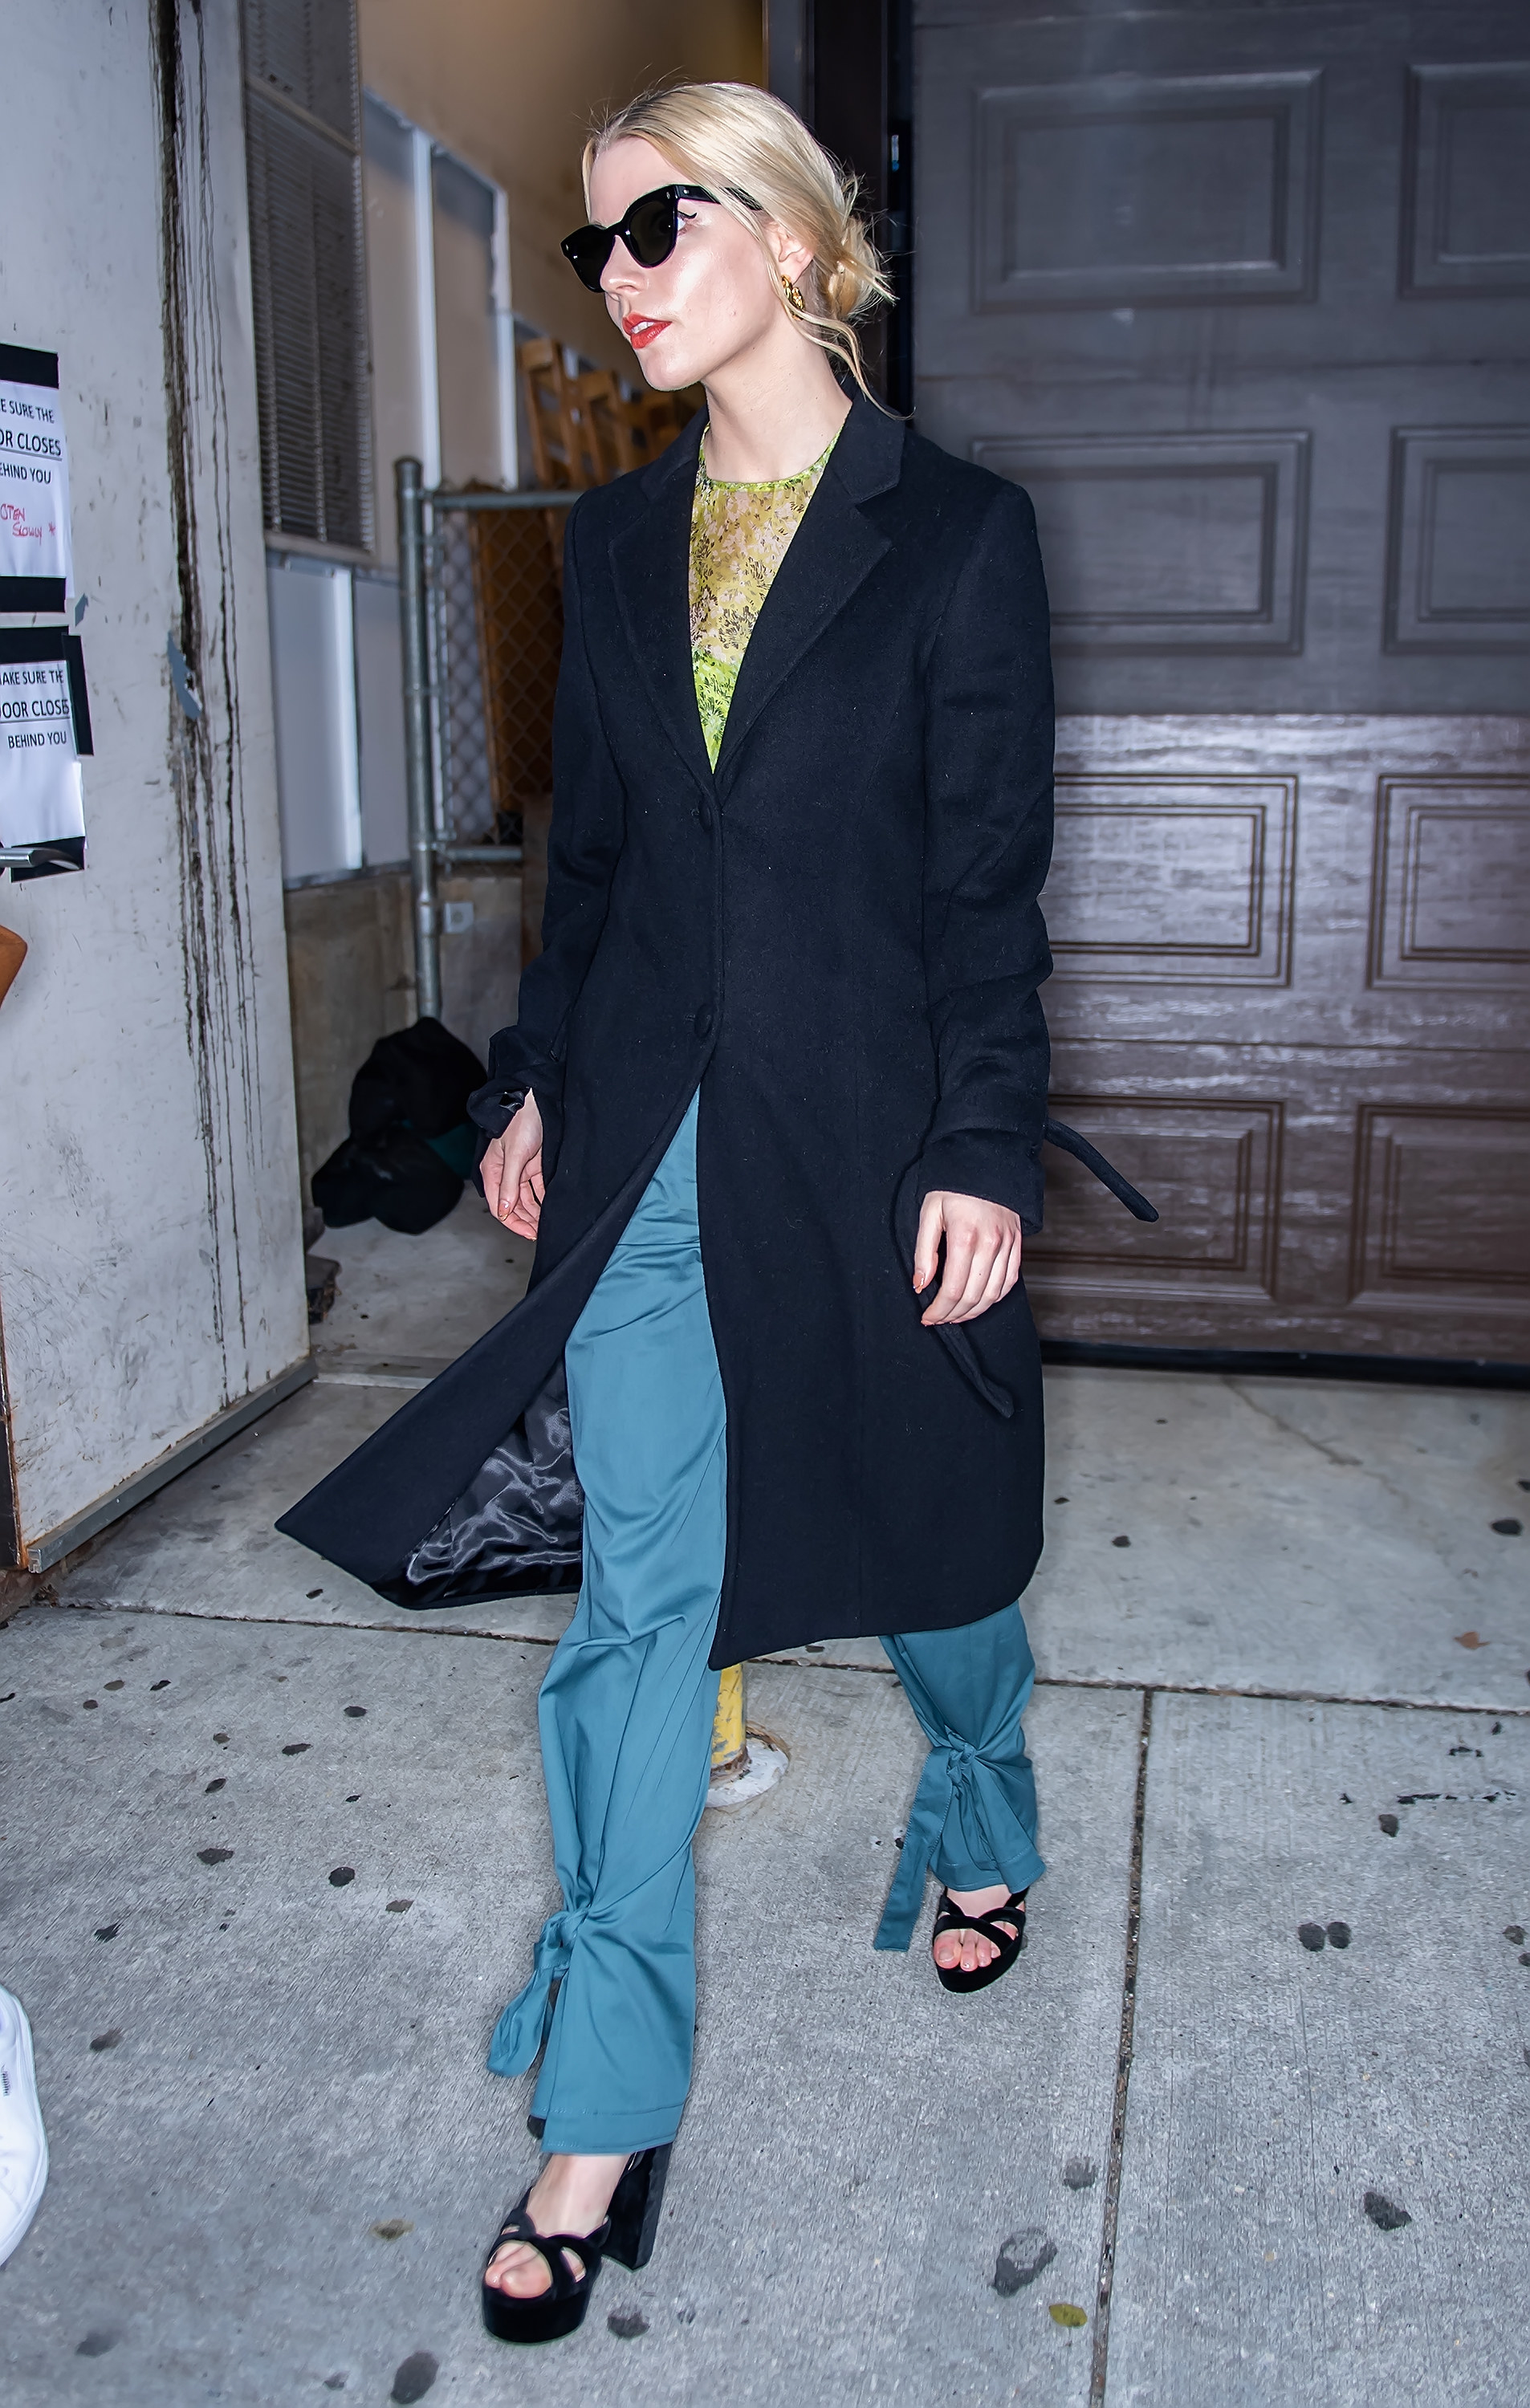 Anya Taylor-Joy walking in a long coat, sunglasses, and platform heels